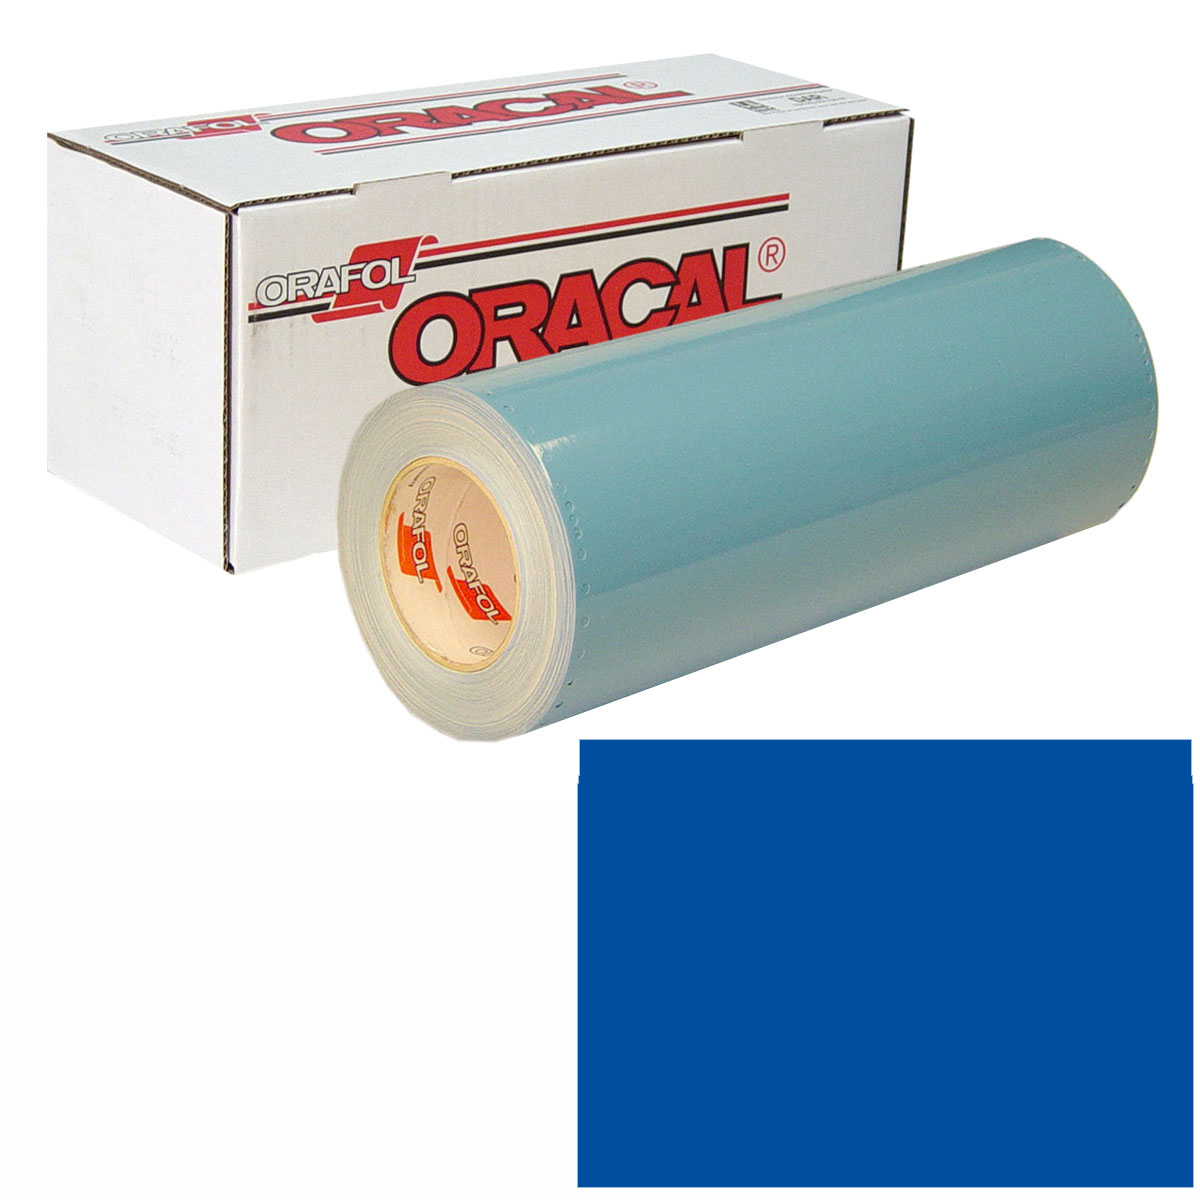 ORACAL 751 Unp 24In X 50Yd 057 Traffic Blue